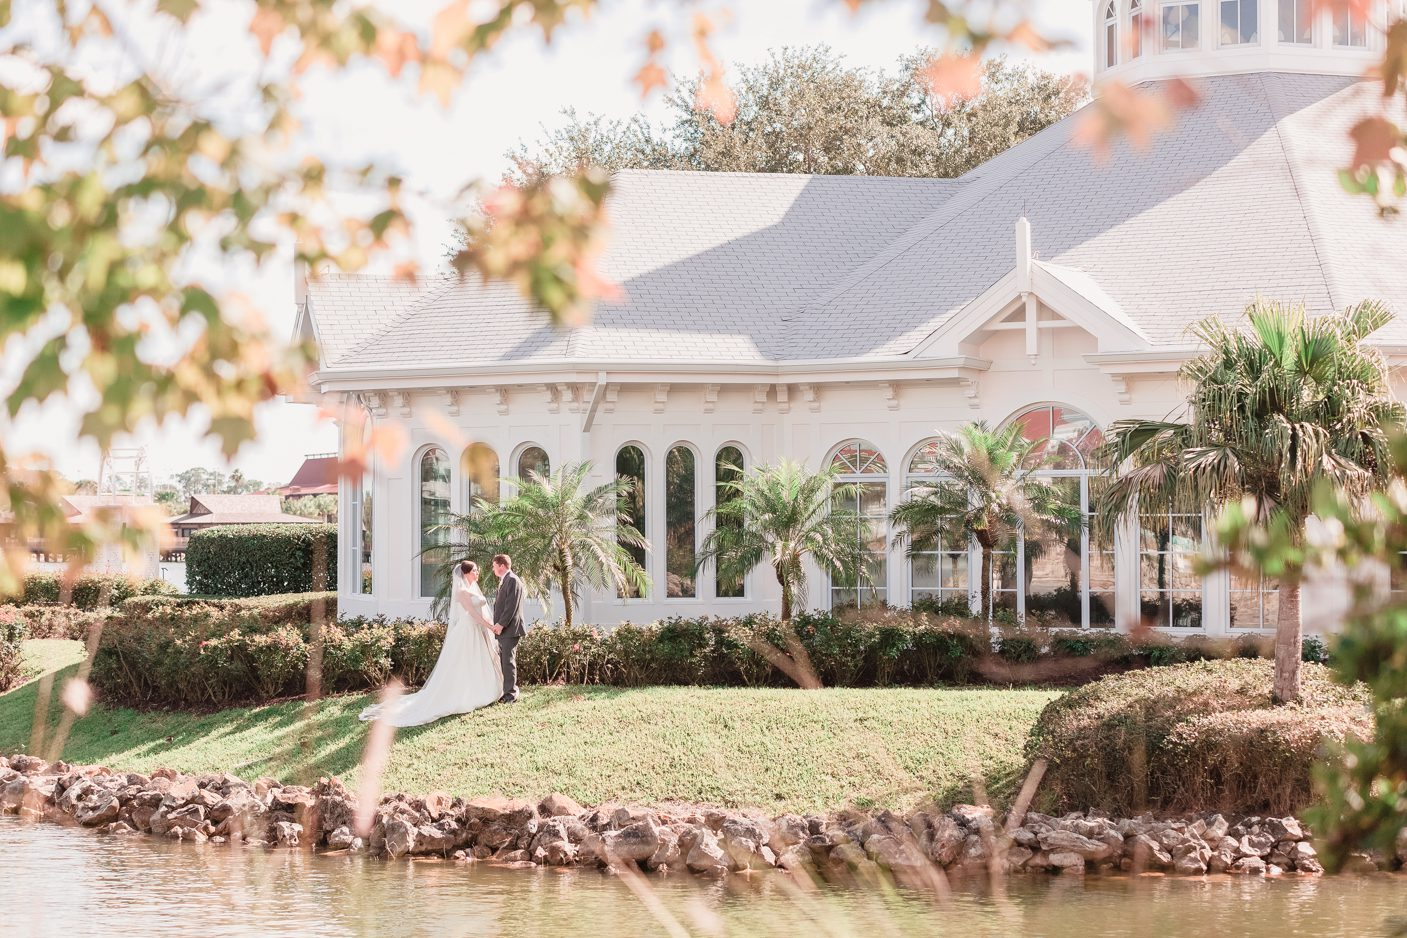 Orlando wedding photographer captures disney wedding pavilion